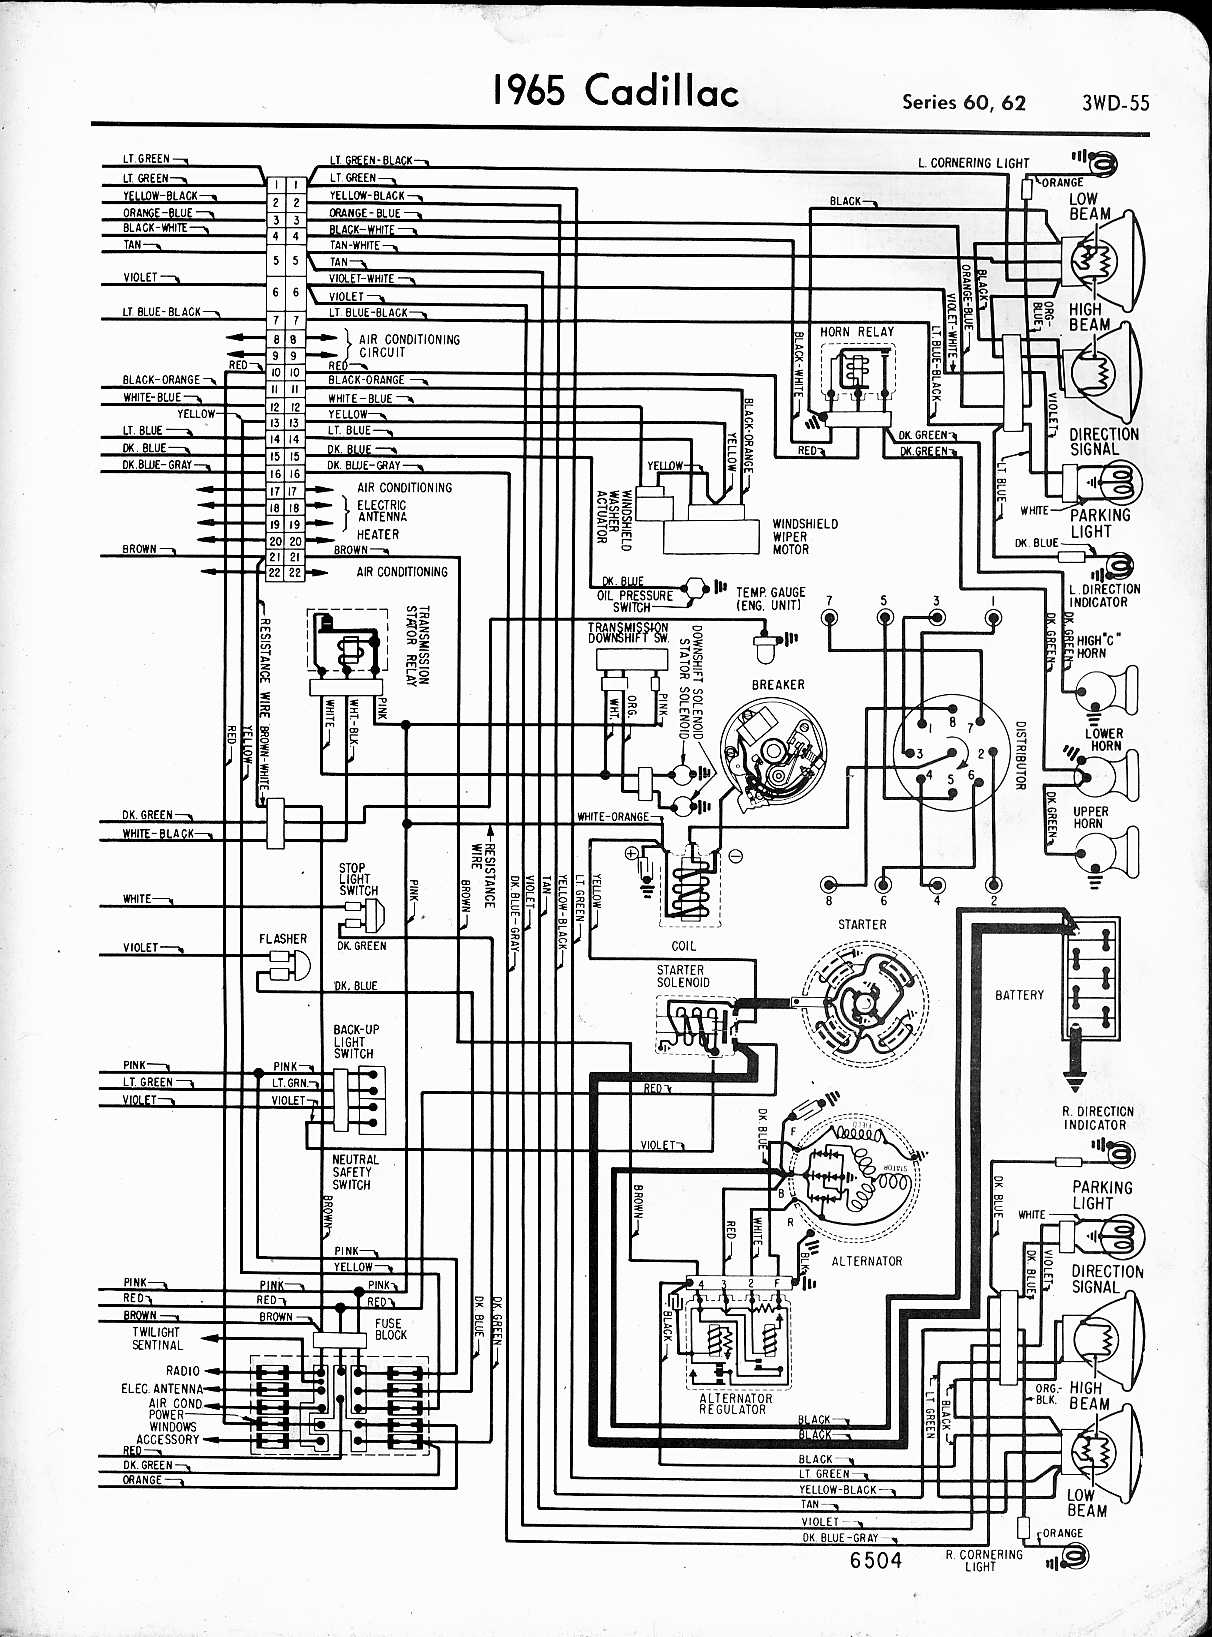 MWireCadi65_3WD 055 cadillac wiring diagrams 1992 cadillac eldorado wiring diagram Rear Defroster Symbol at webbmarketing.co